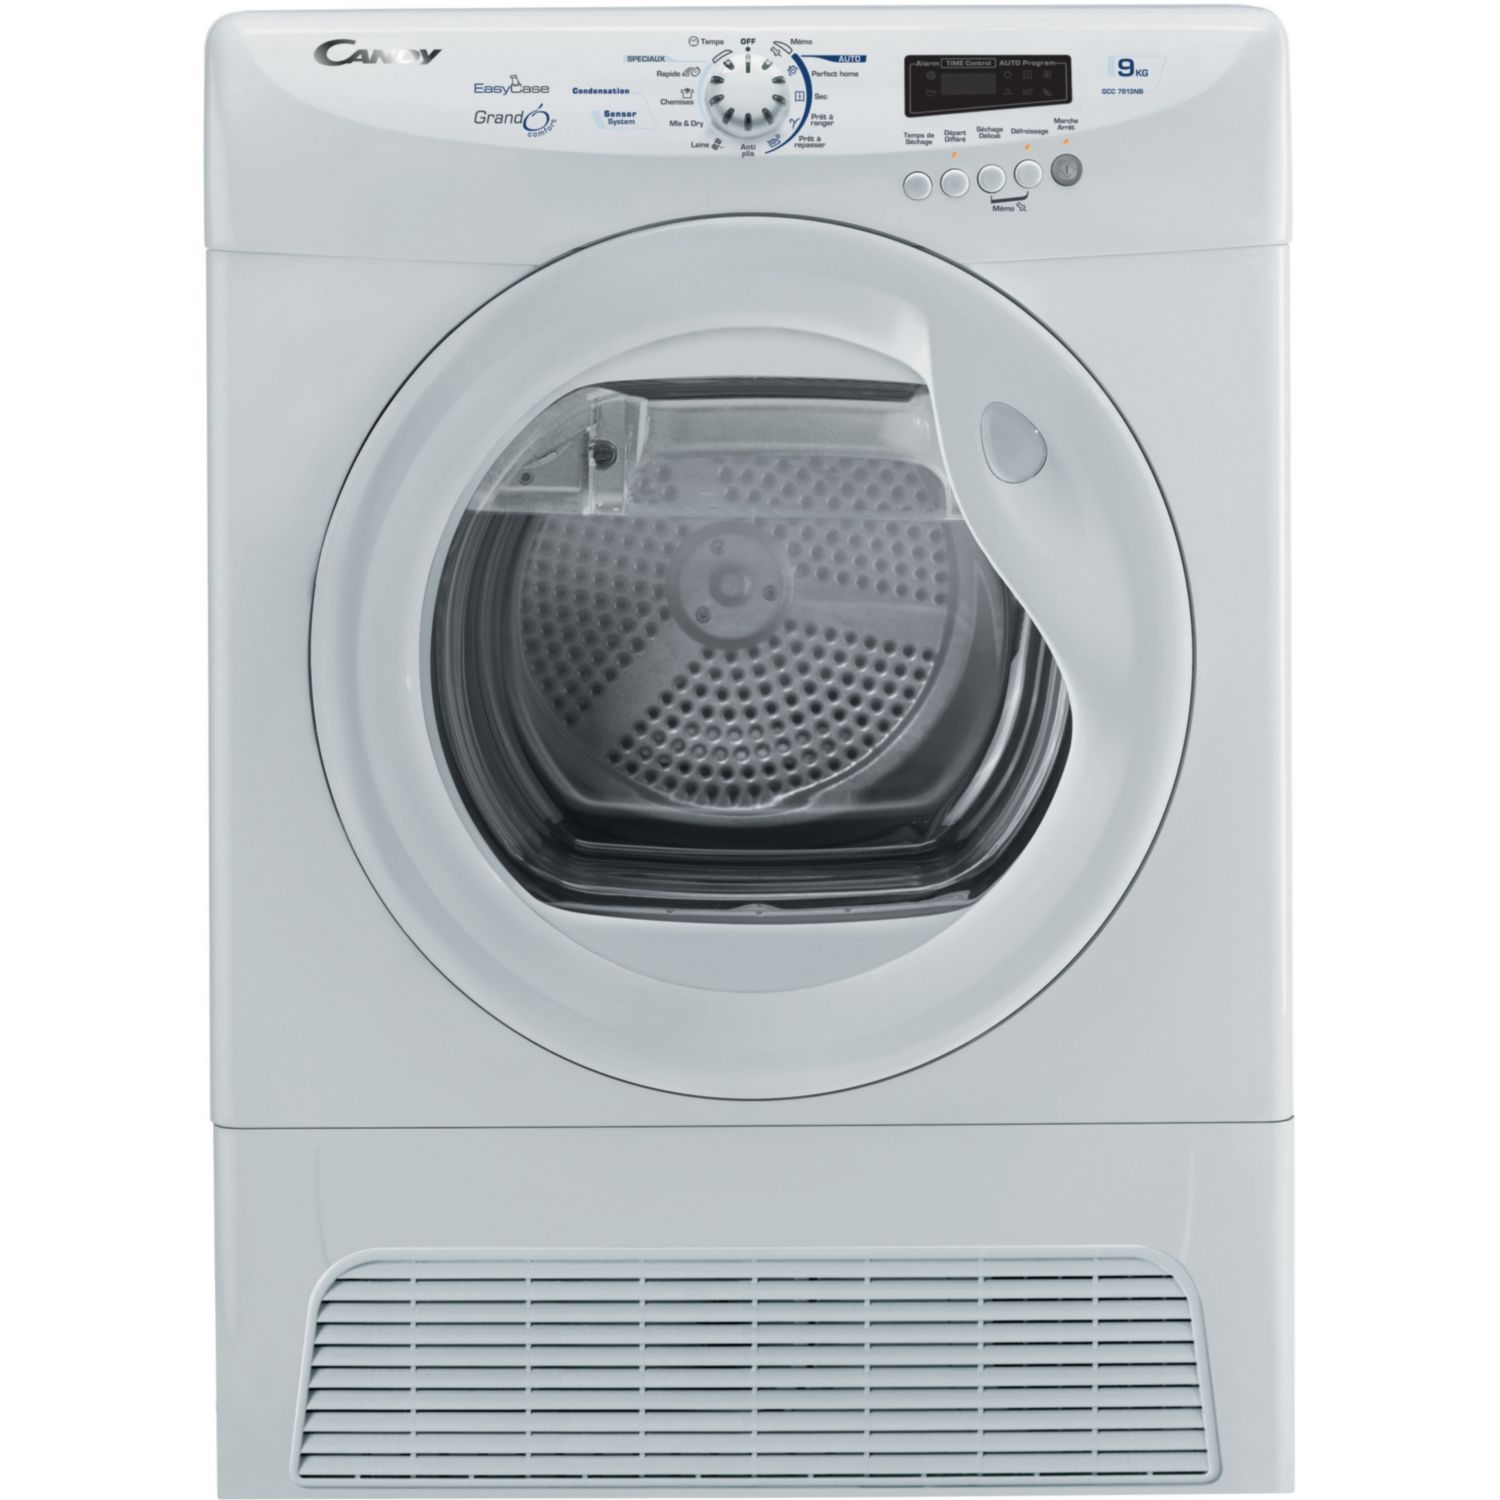 Location s che linge frontal location s che linge frontal candy gcc 7913 nb - Seche linge performant ...